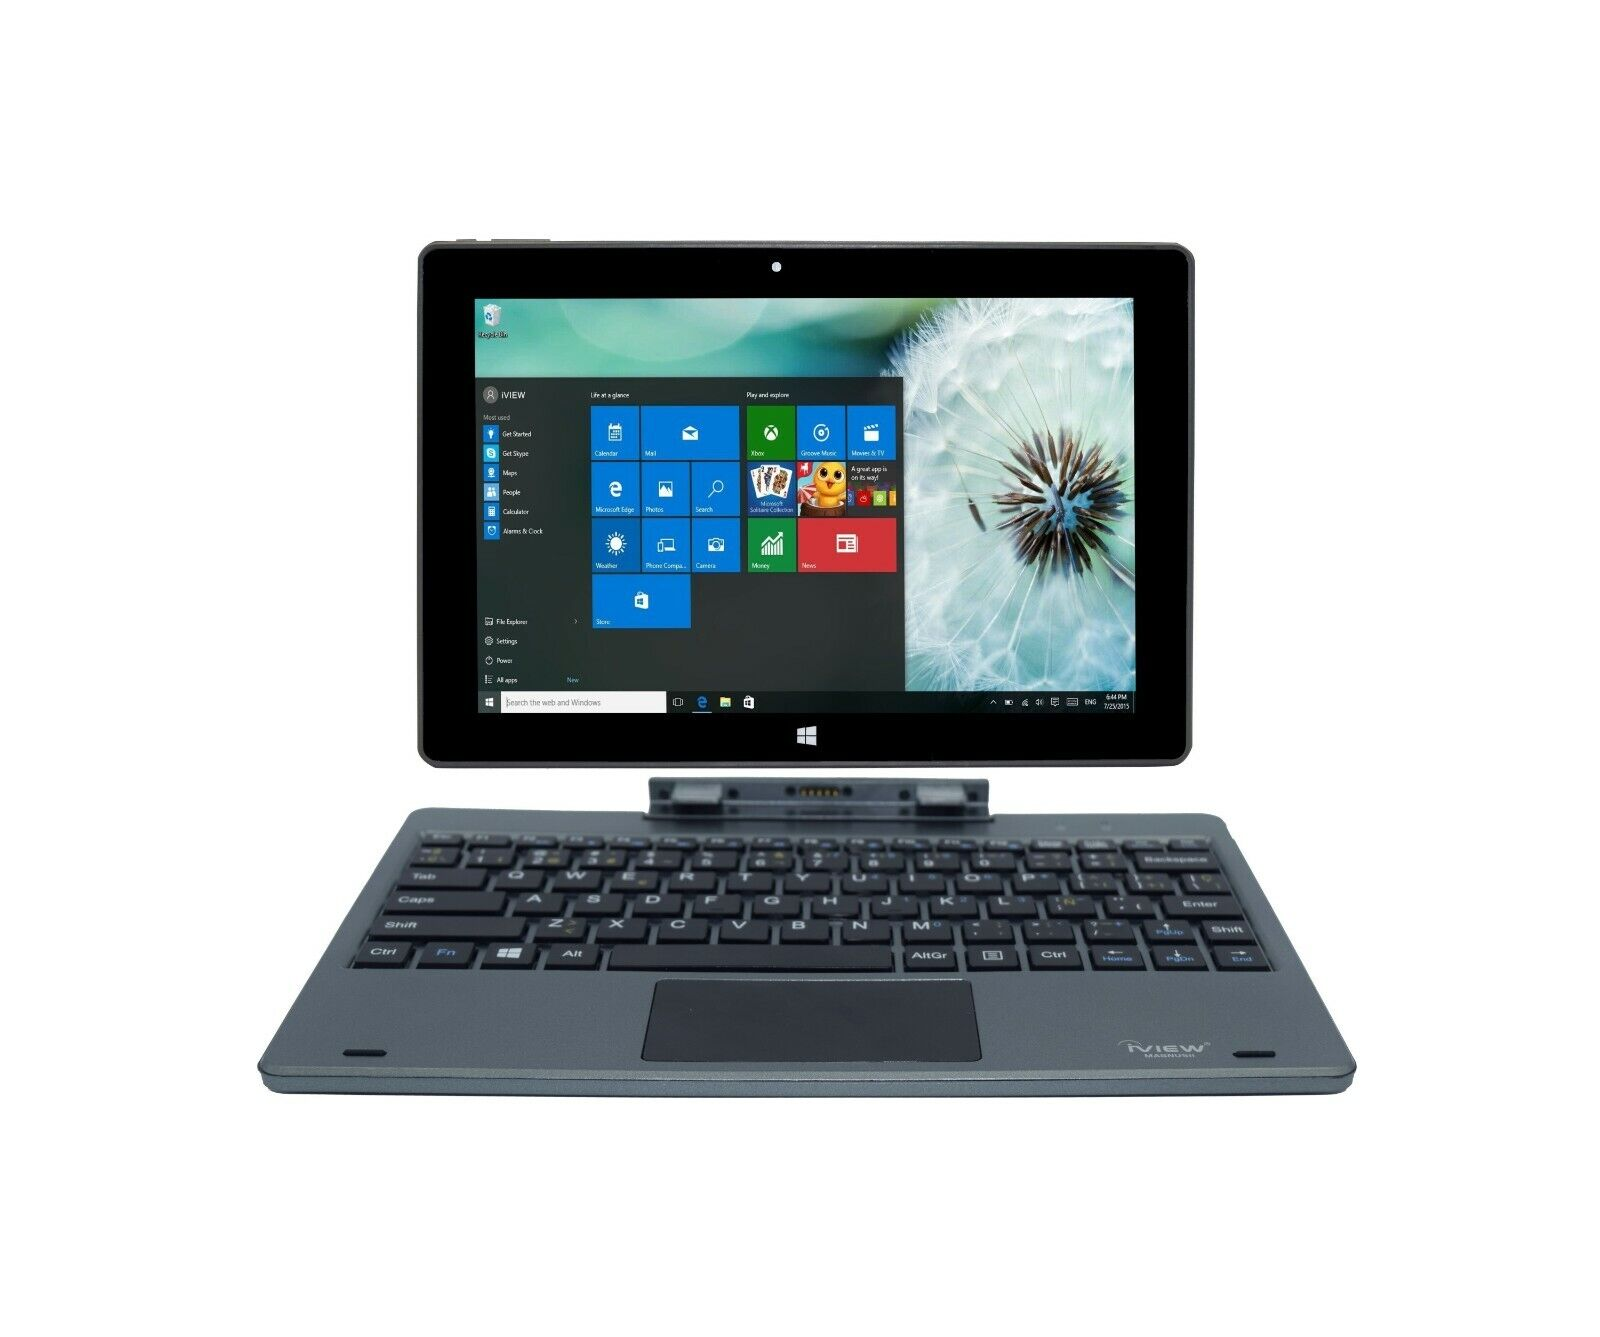 "Laptop Windows - iView Magnus Plus - 10.1"" 2GB/32GB 2-in-1 Windows 10 Touch Screen Laptop"